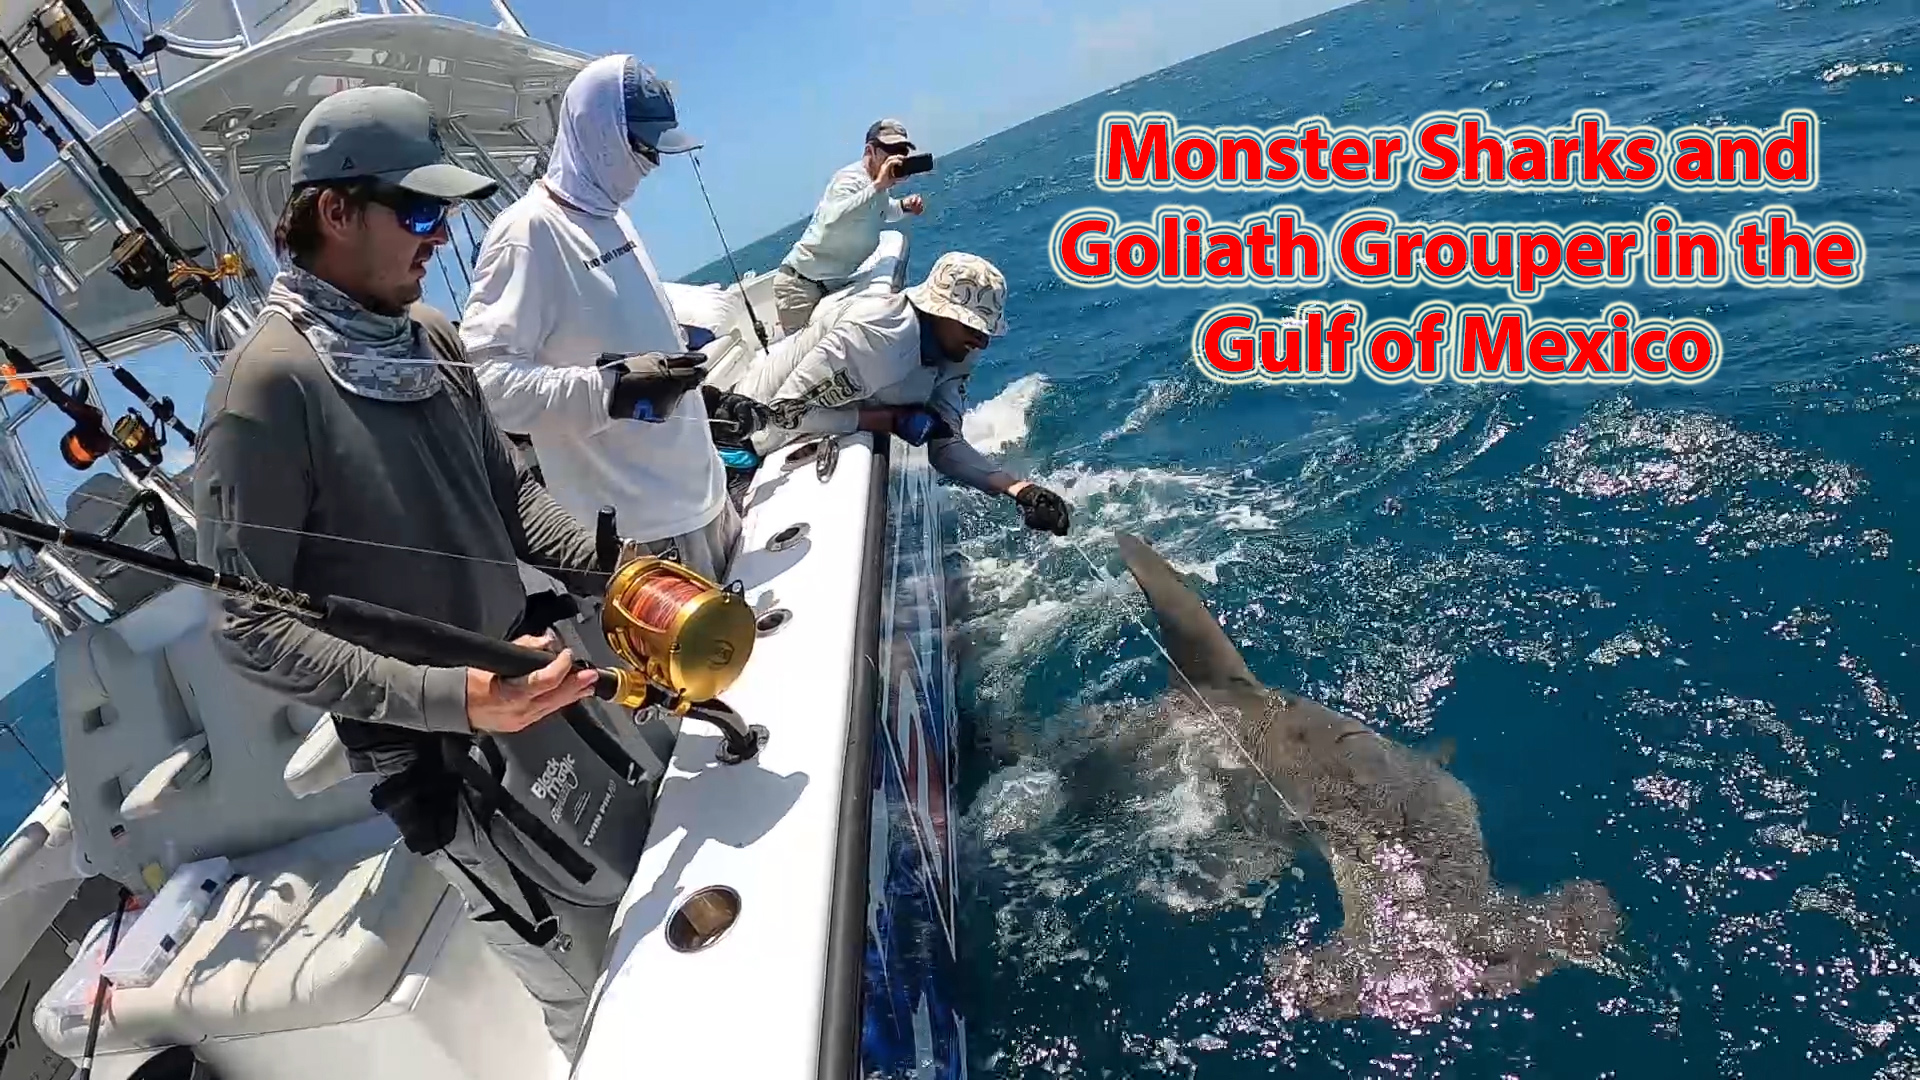 Monster Sharks & Goliath Grouper in the Gulf of Mexico!